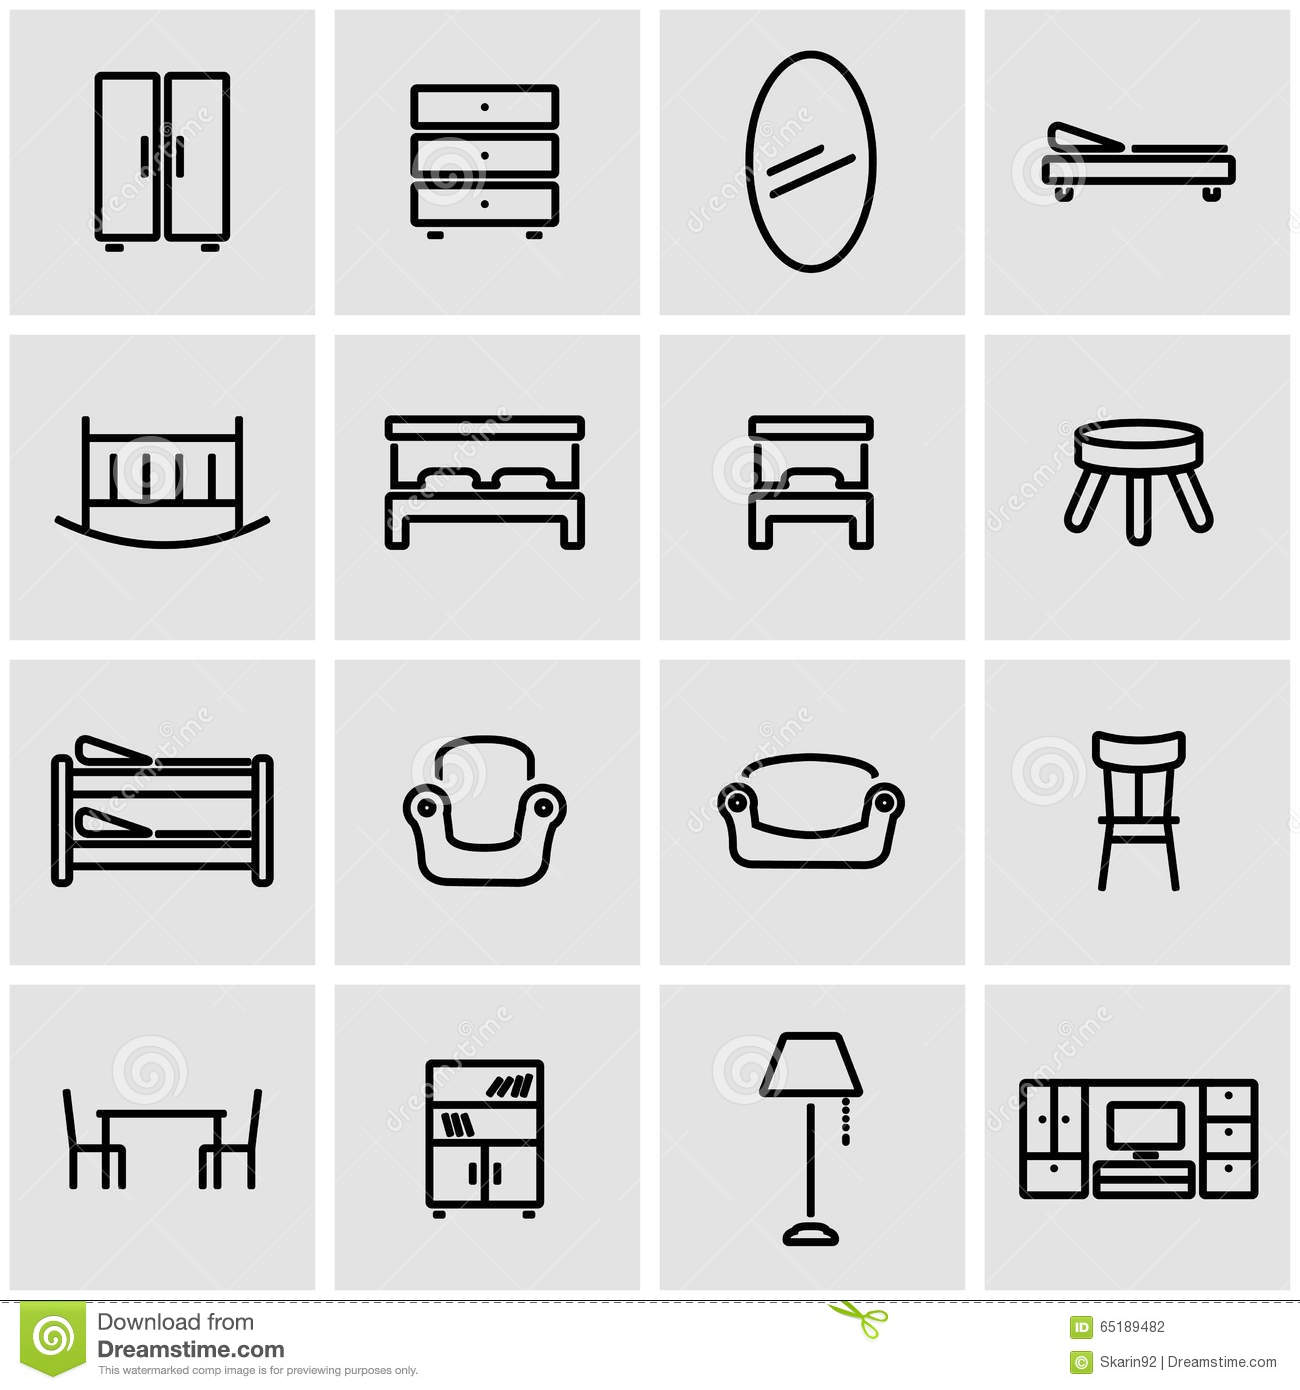 Vector line furniture icon set